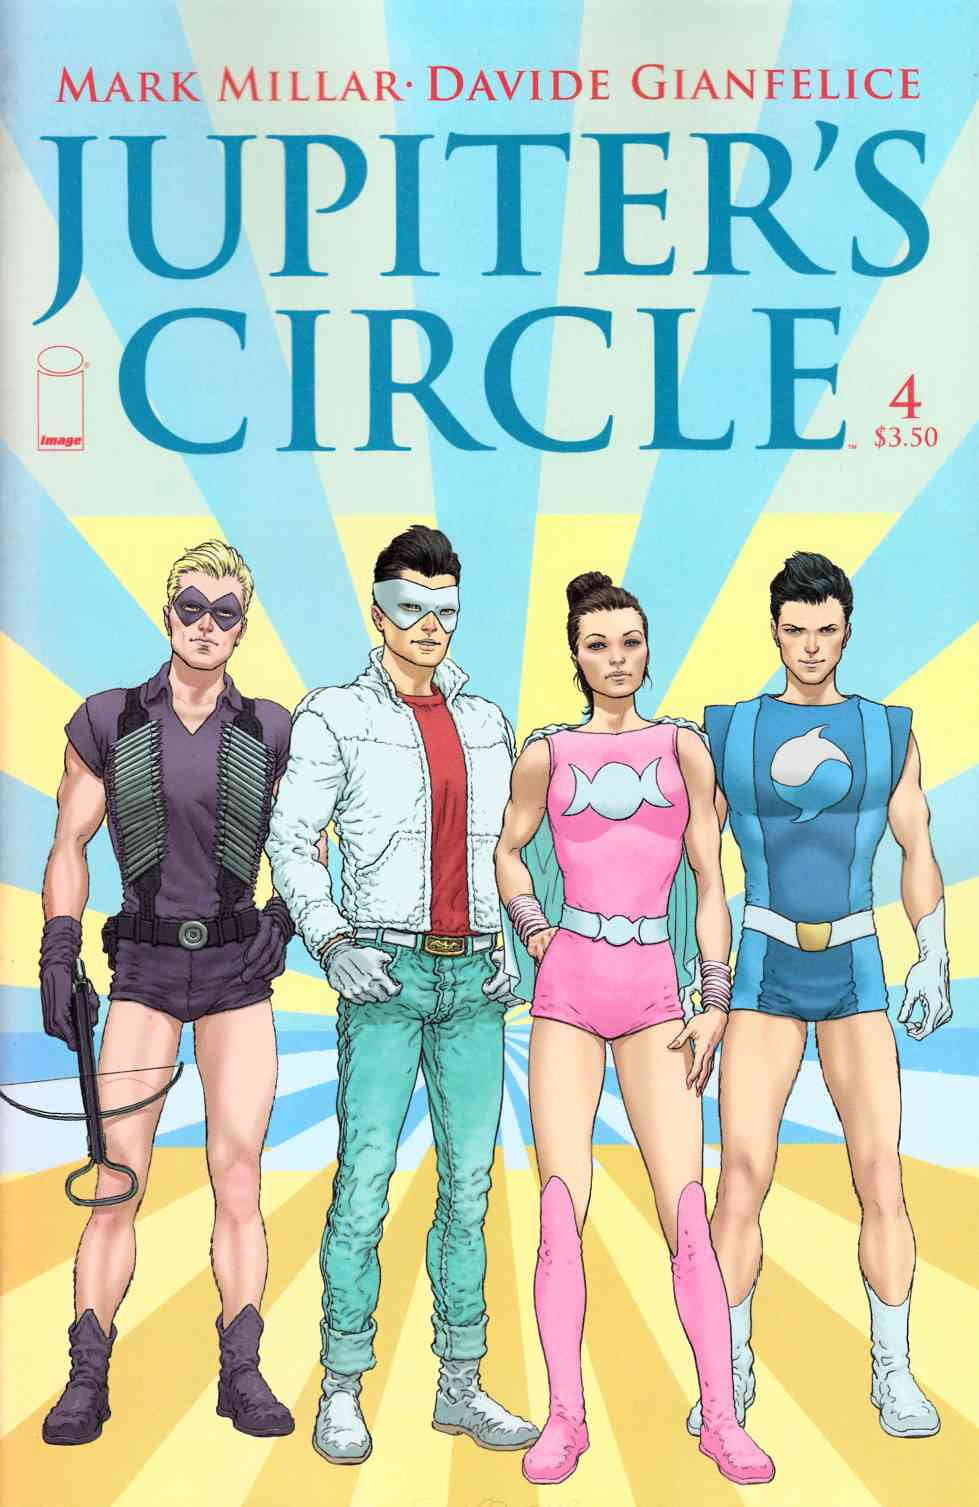 Jupiters Circle #4 [Image Comic]